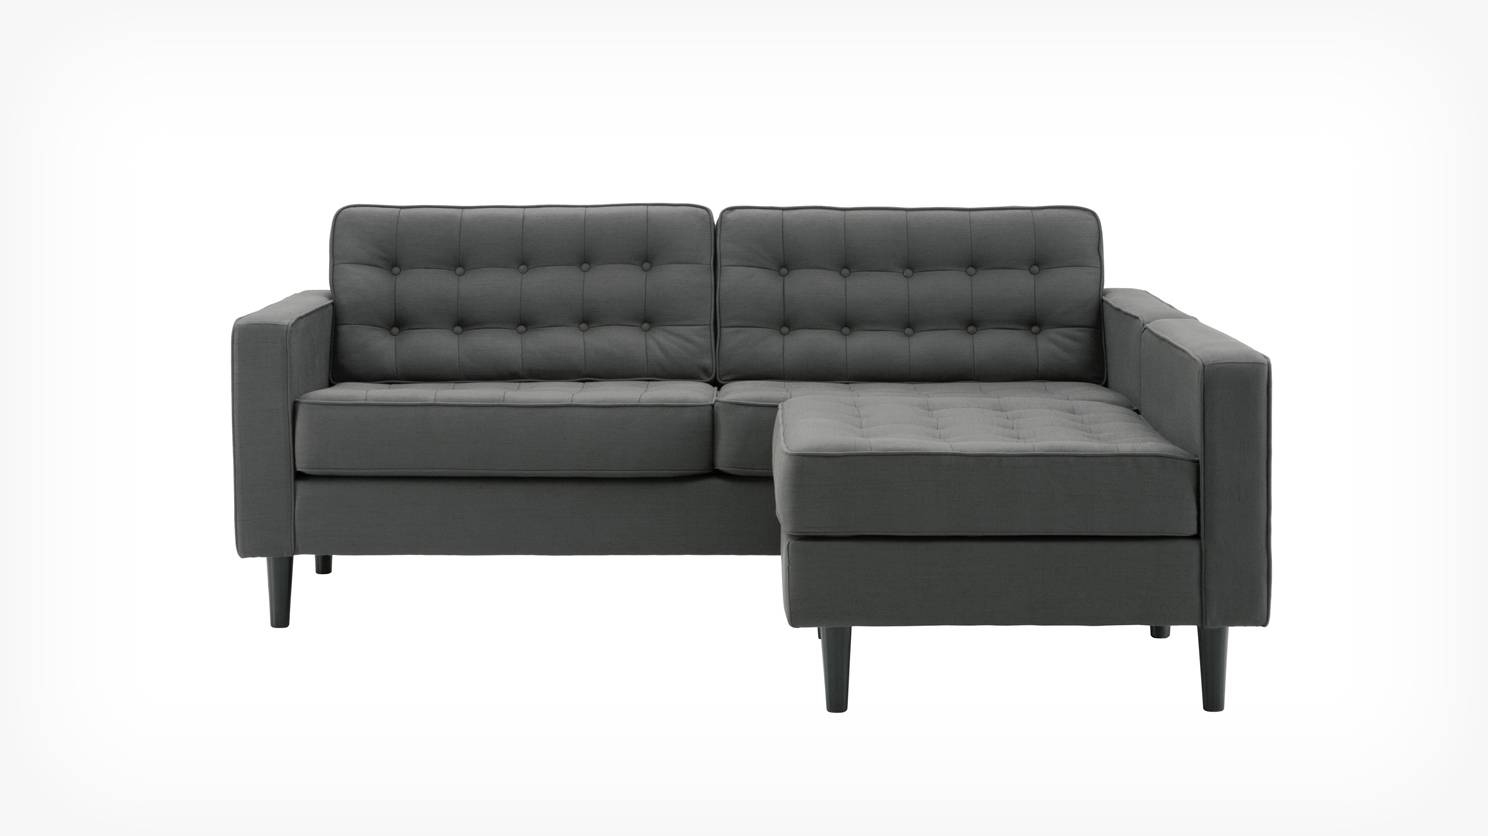 Eq3 | Reverie Apartment 2-Piece Sectional Sofa With Chaise - Fabric inside Apartment Sectional Sofa With Chaise (Image 19 of 30)